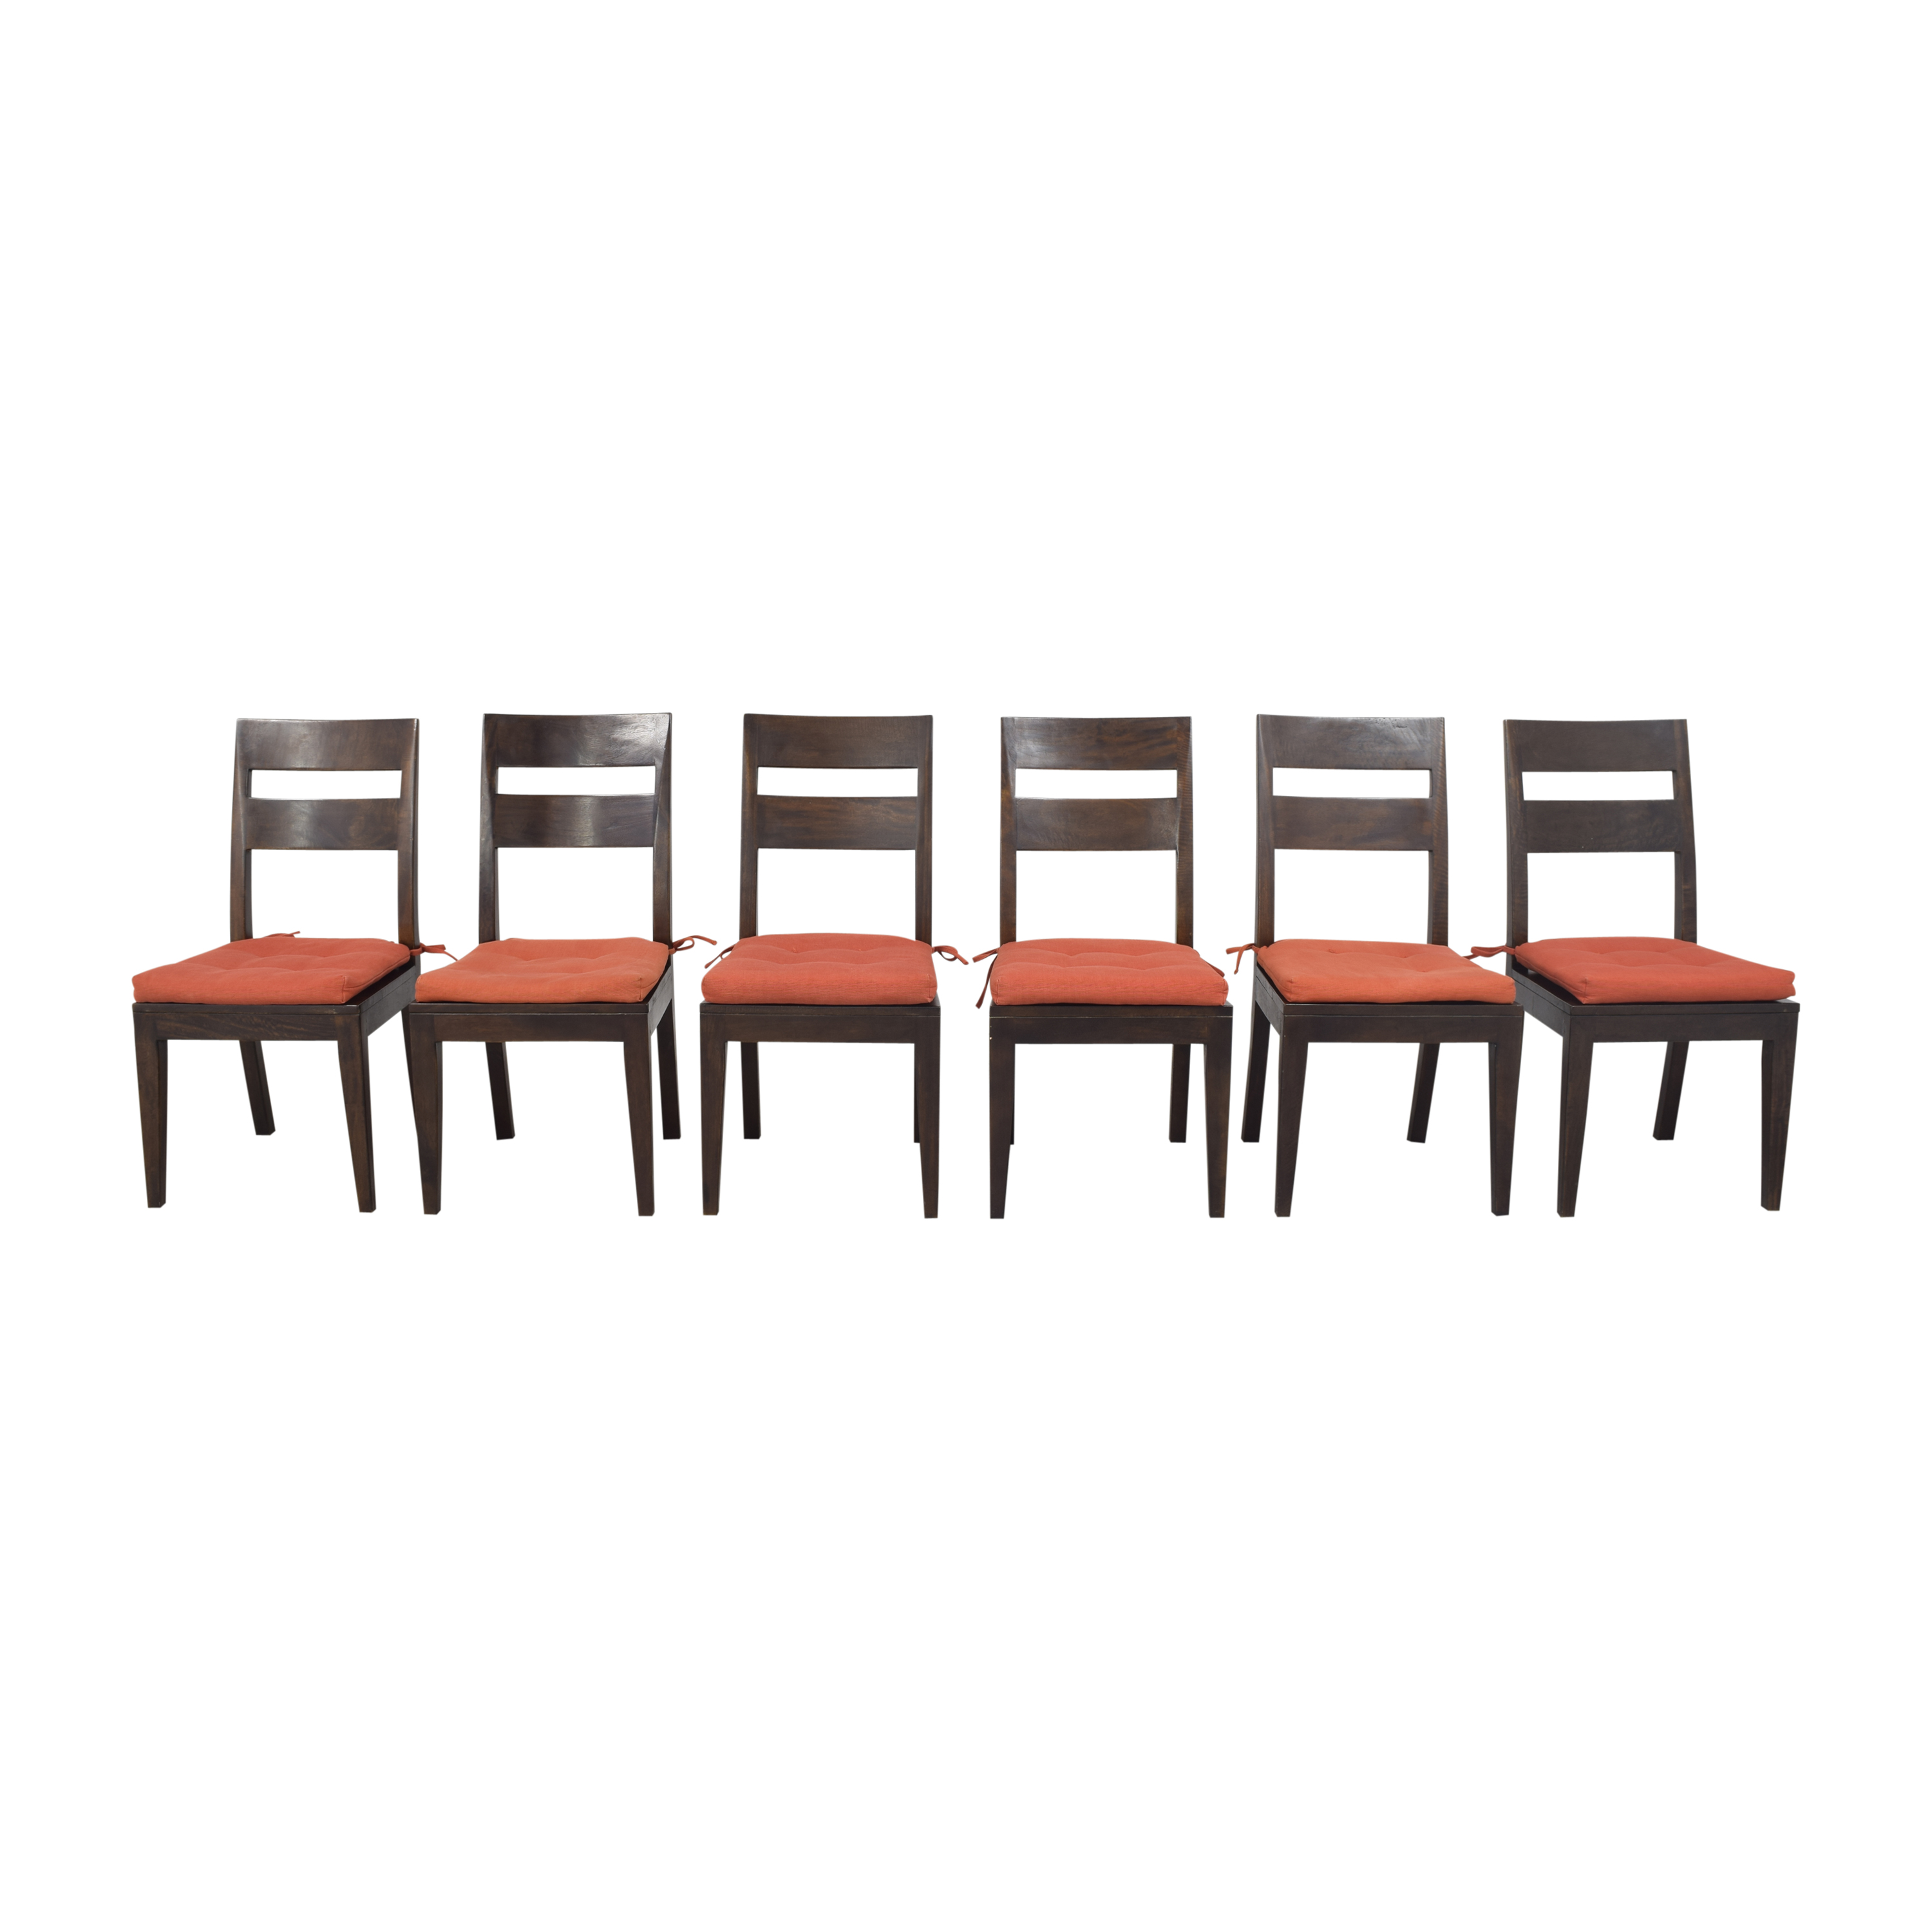 Crate & Barrel Crate & Barrel Basque Dining Side Chairs